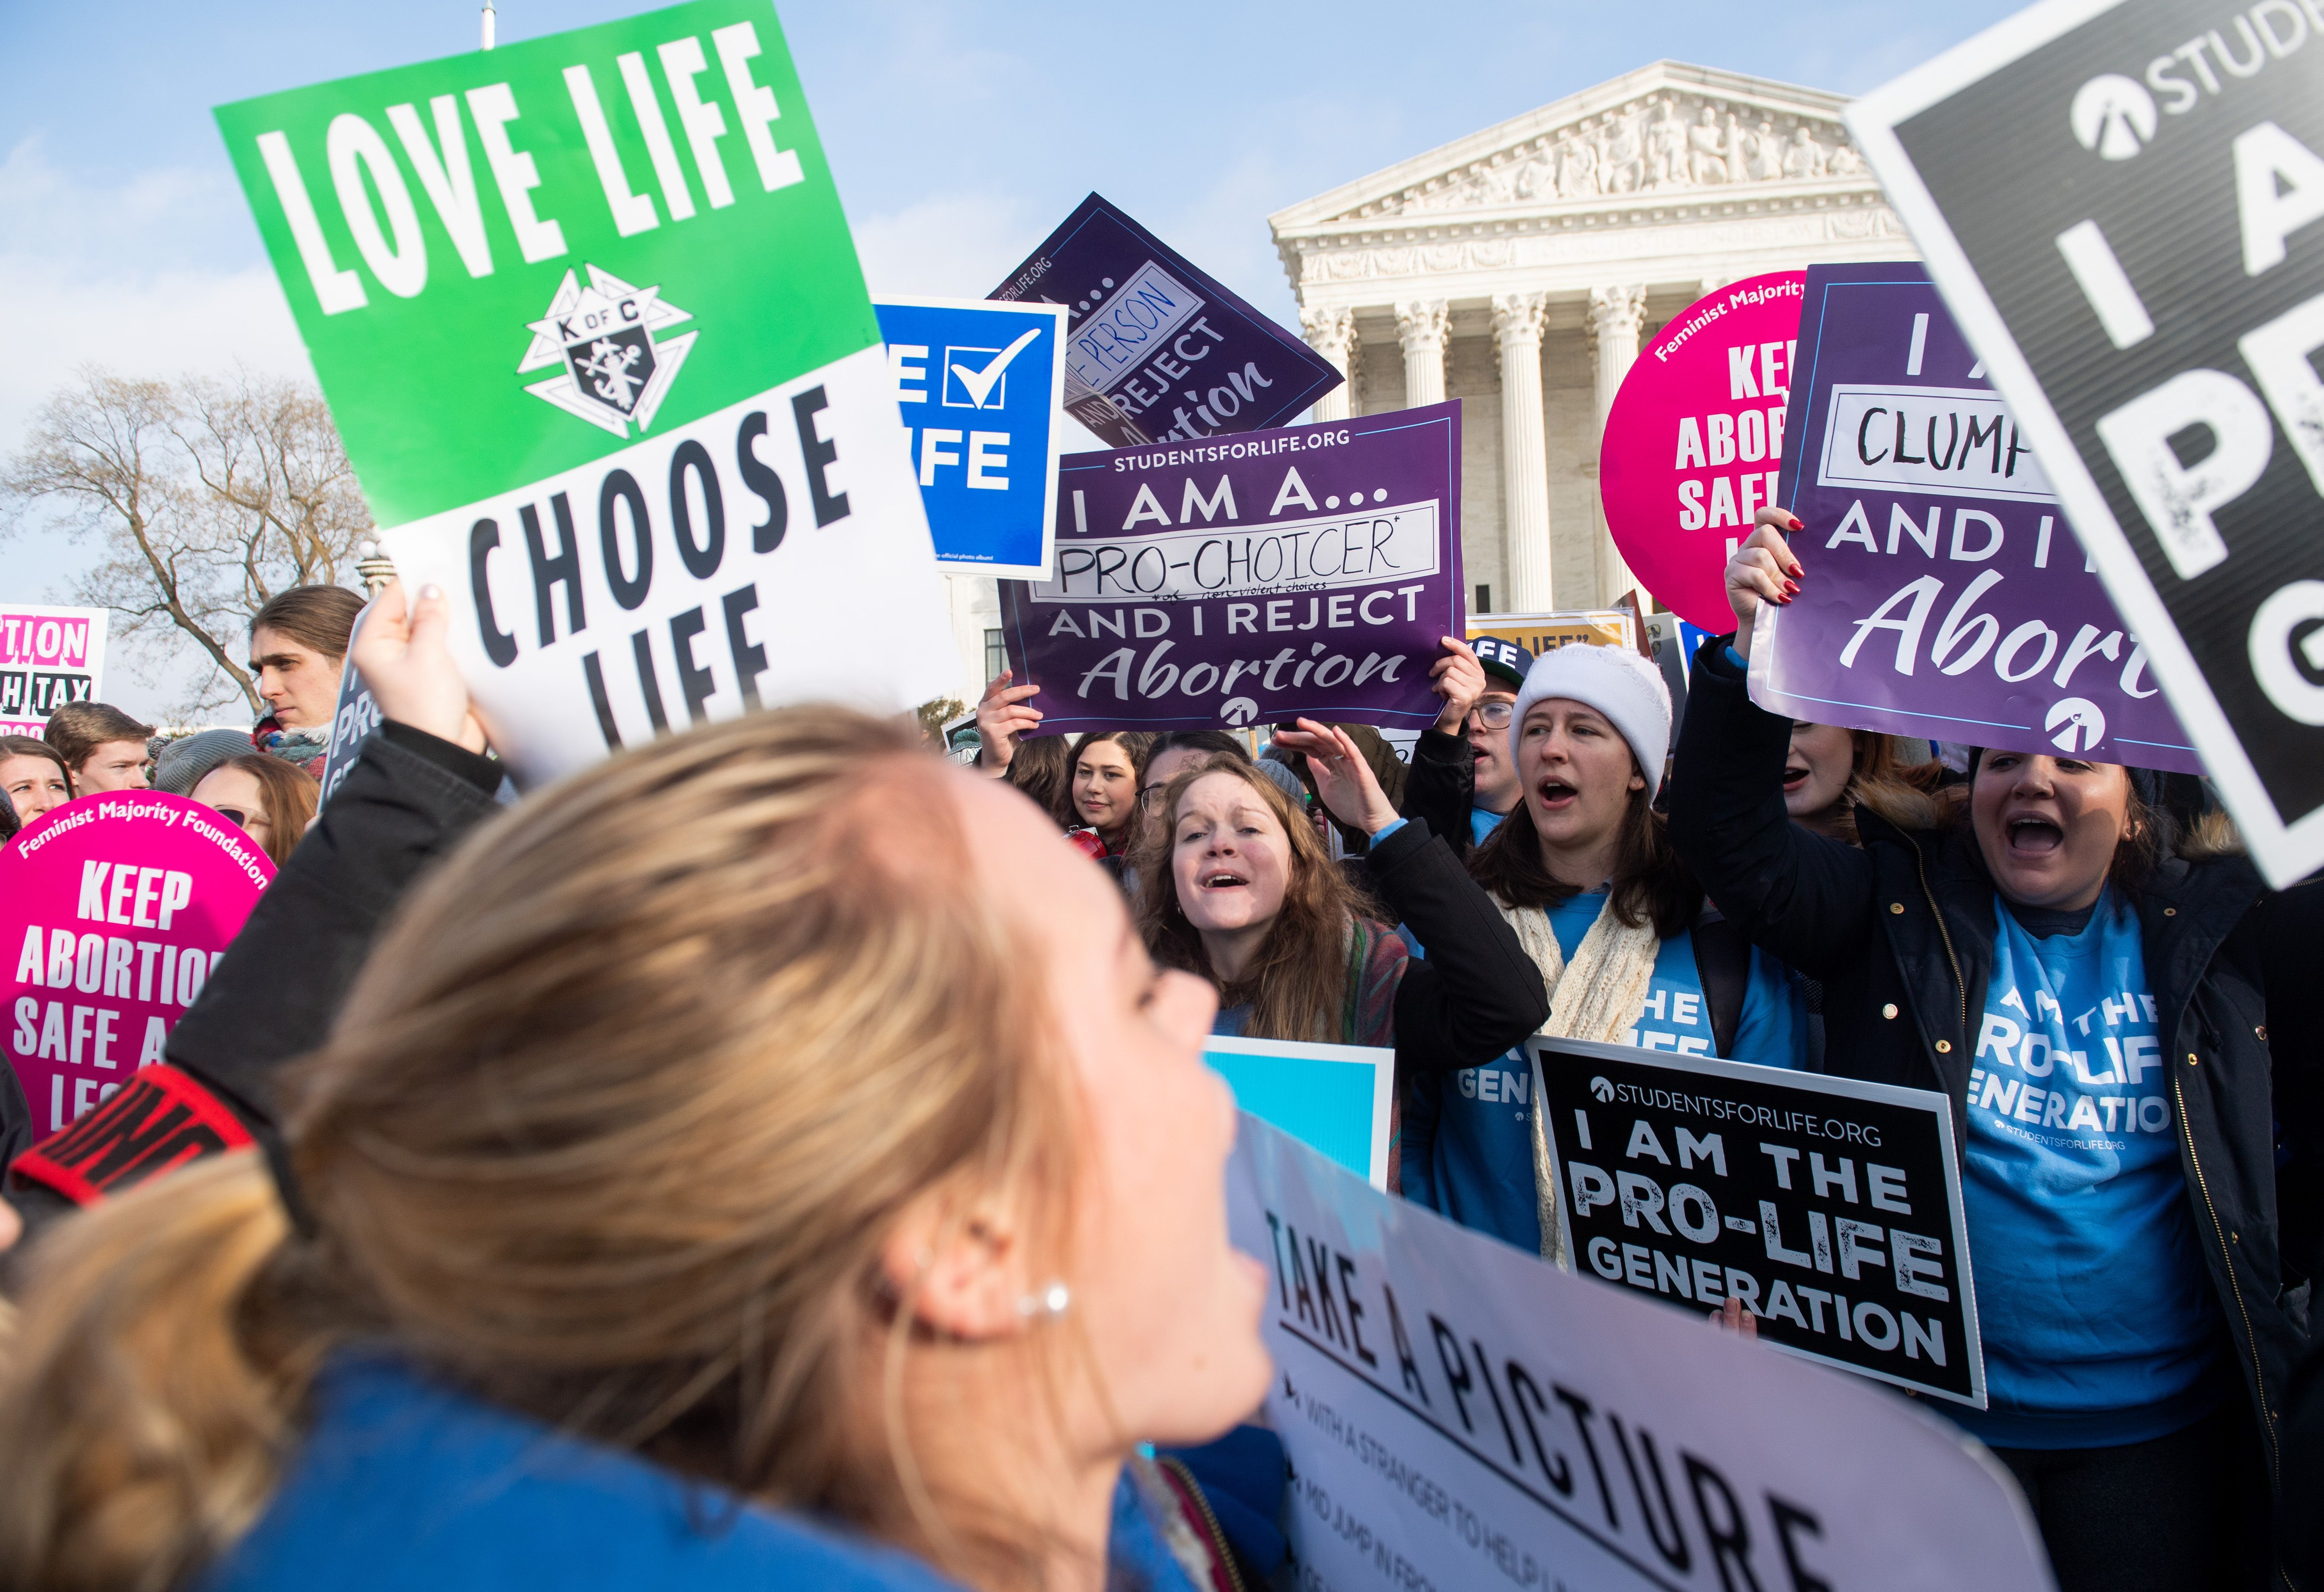 Why anti-abortion groups are backing away from abortion bans